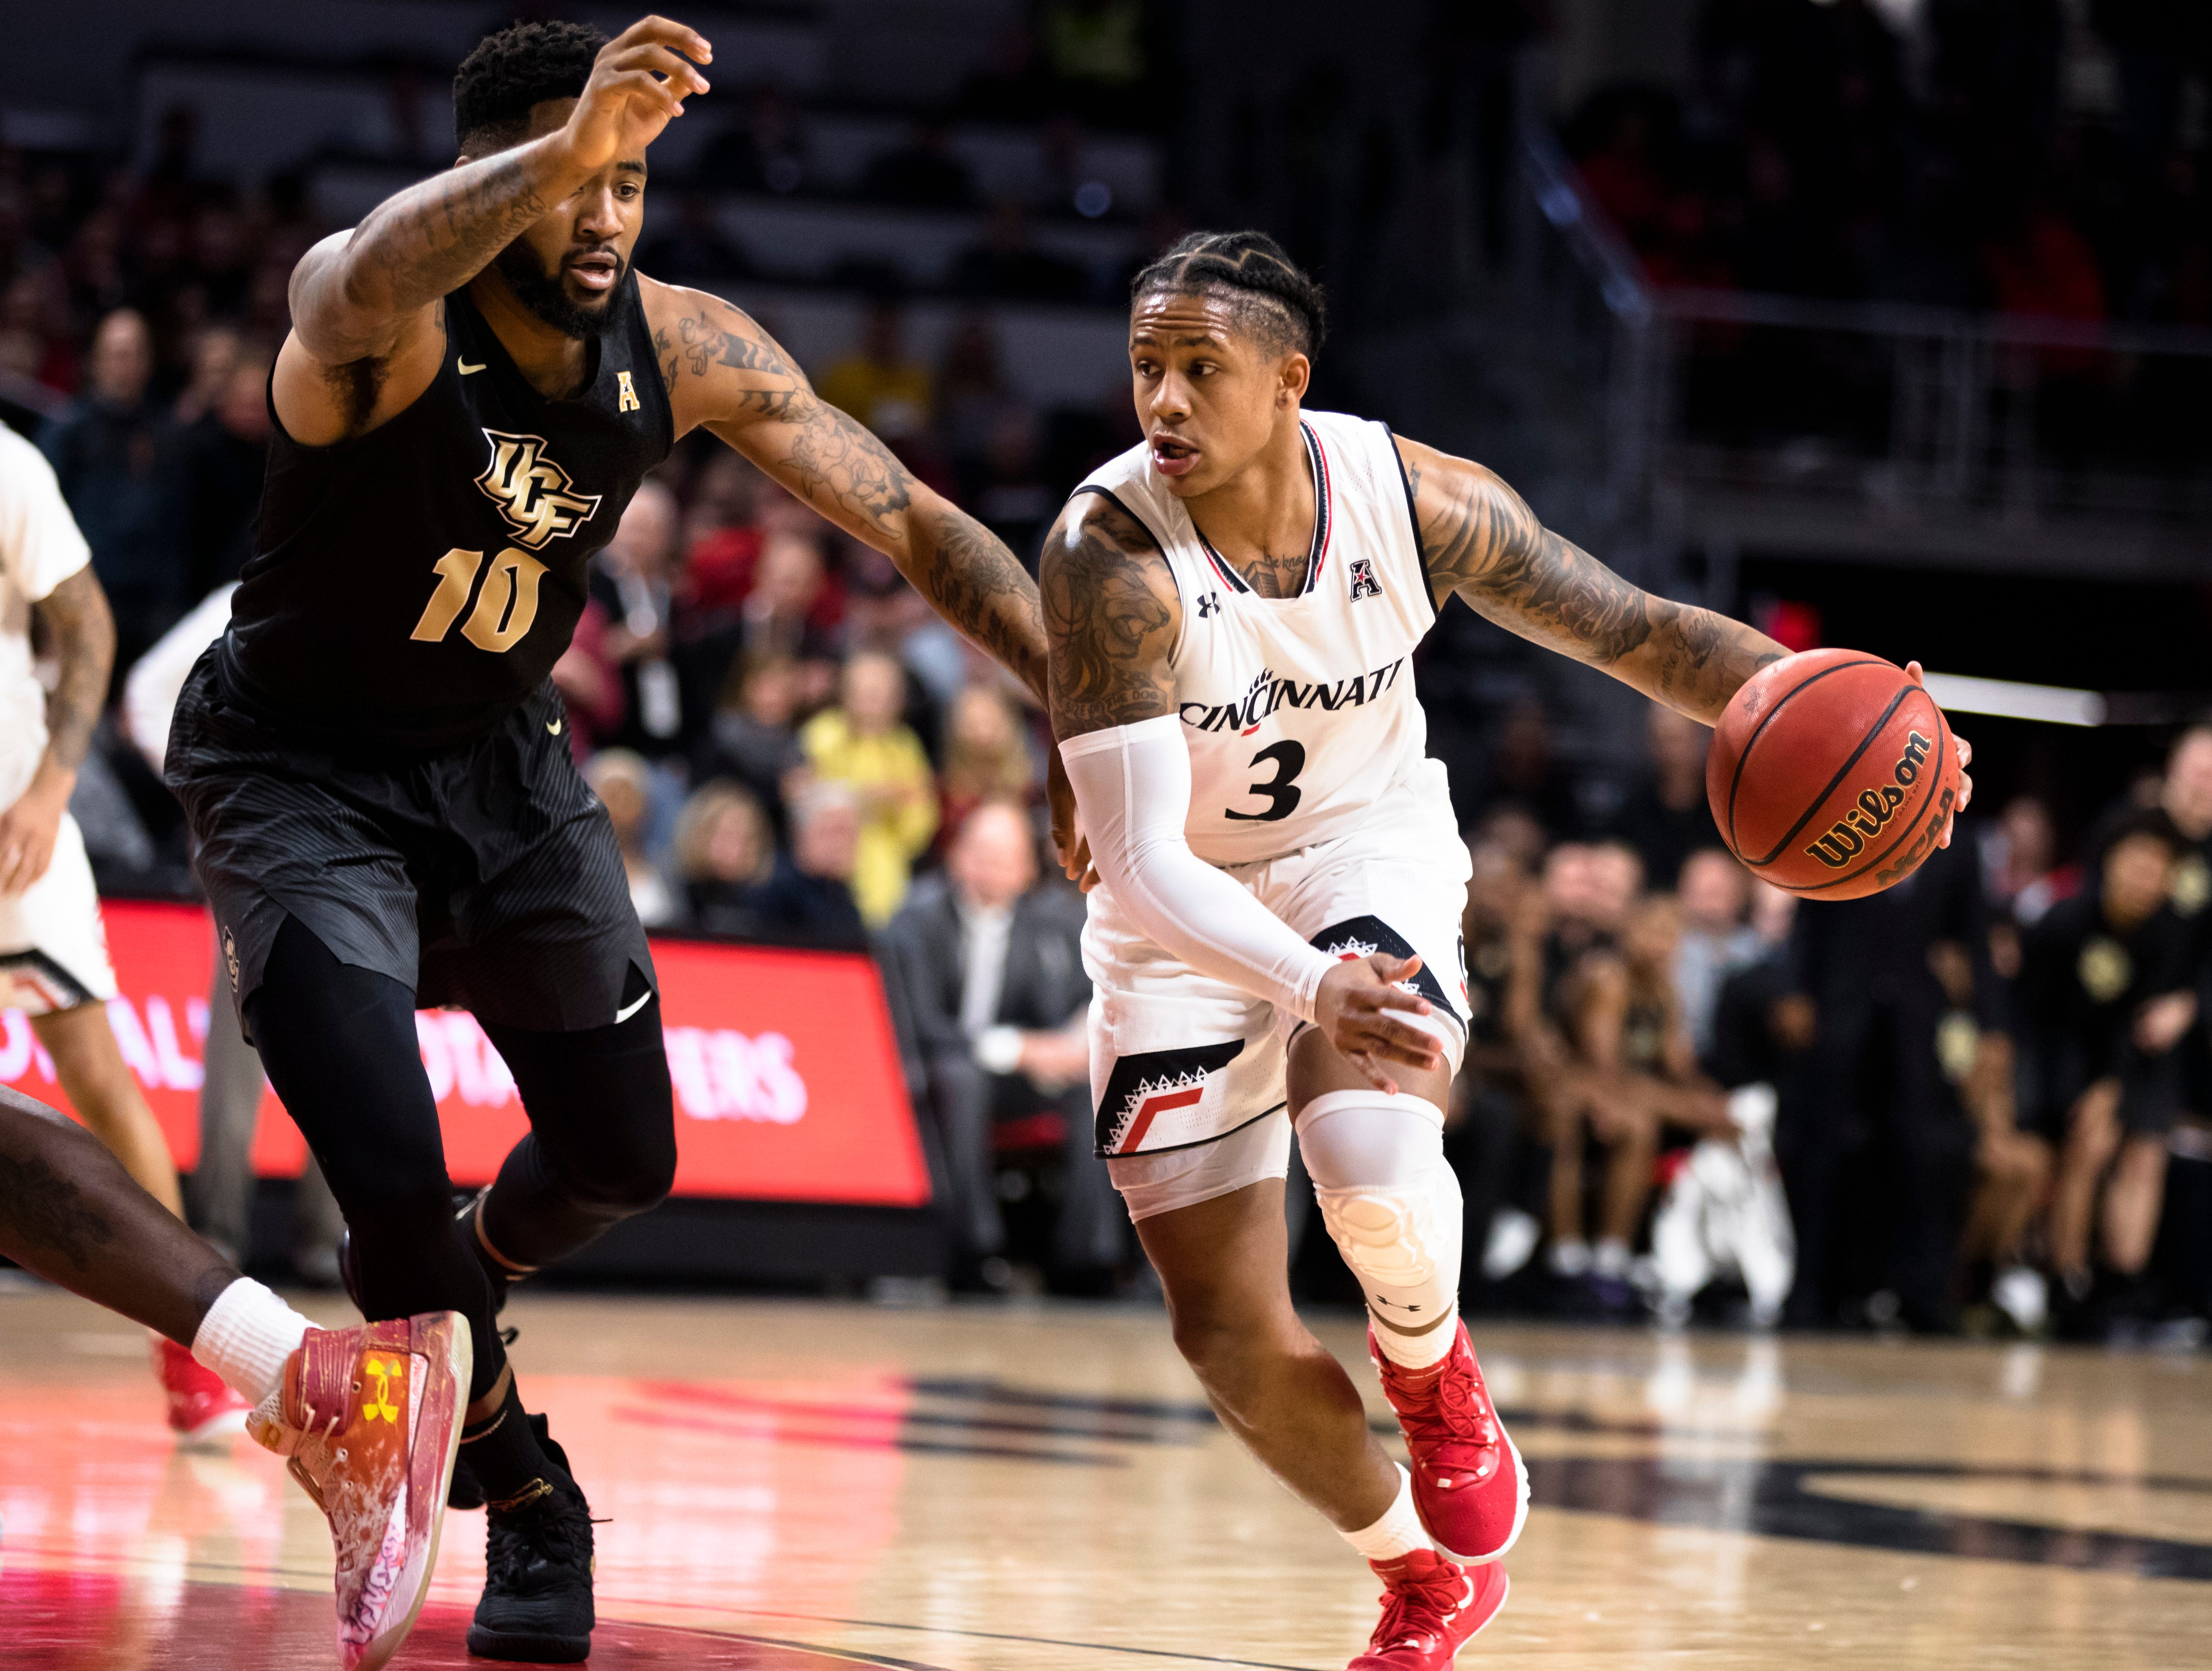 Cincinnati Bearcats guard Justin Jenifer (3) drives on UCF Knights guard Dayon Griffin (10) in the second half of the NCAA men's basketball game between Cincinnati Bearcats and UCF Knights on Thursday, Feb. 21, 2019, at Fifth Third Arena in Cincinnati.